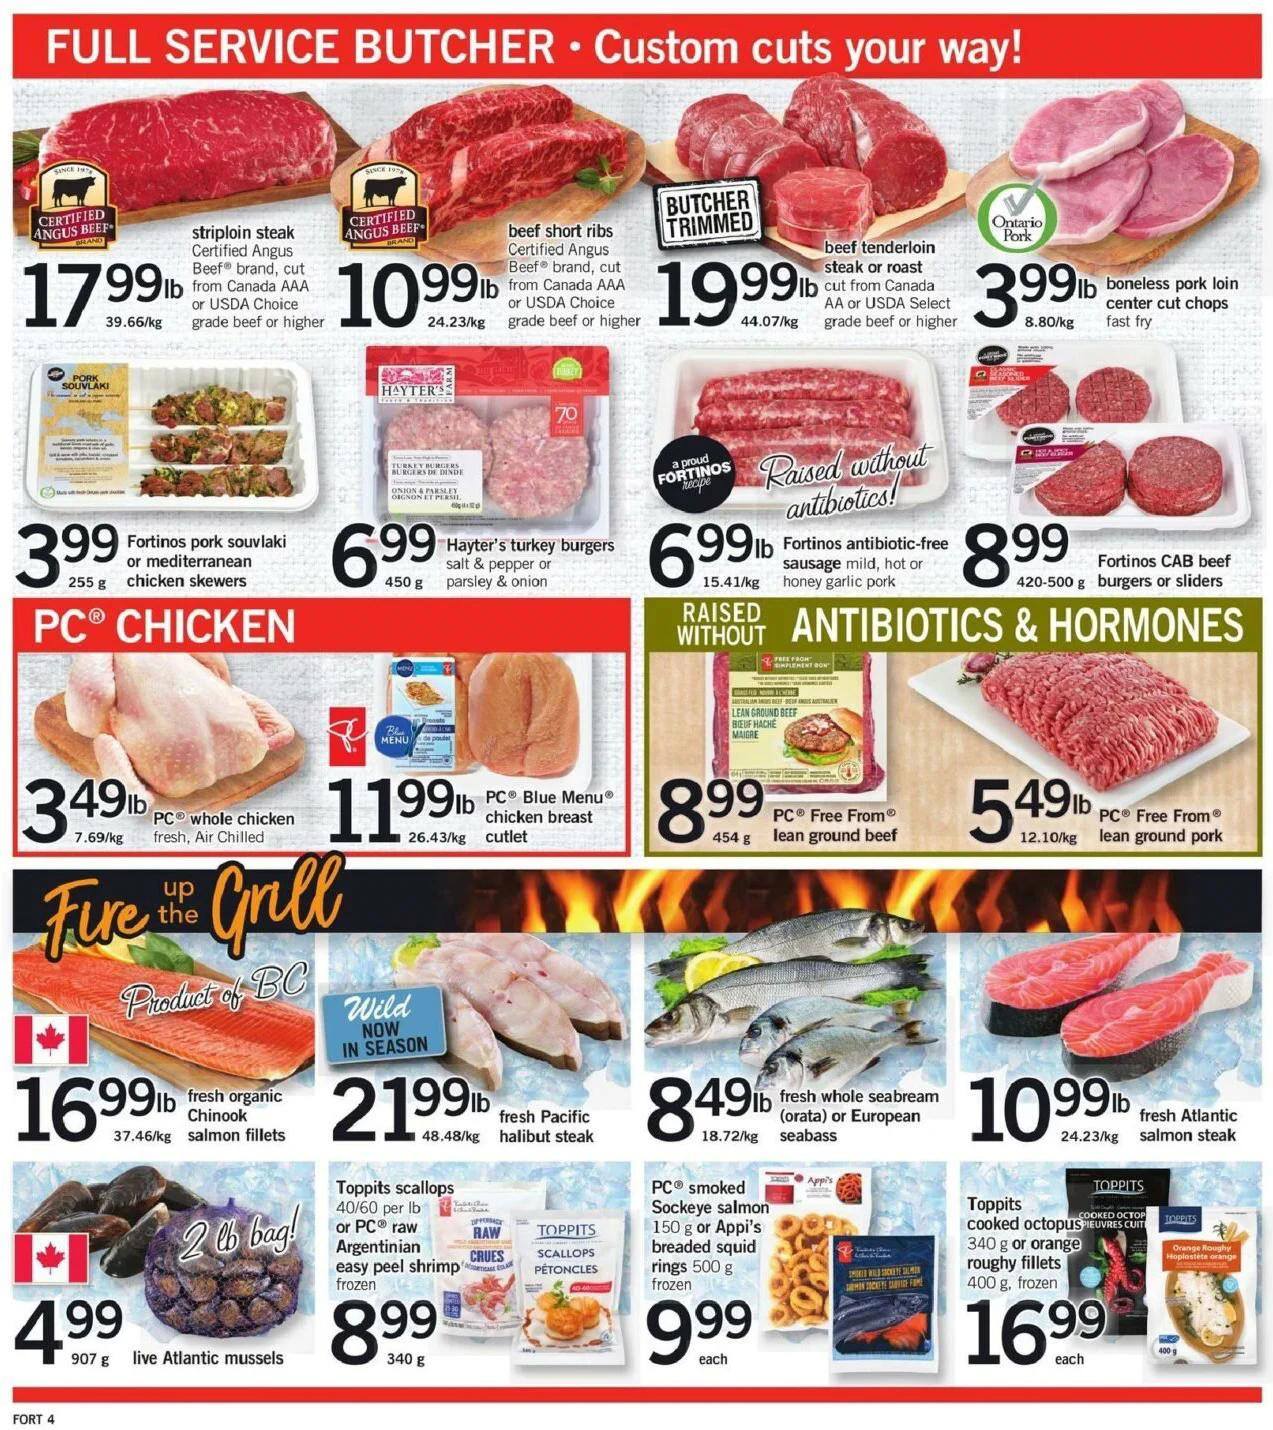 Fortinos - Weekly Flyer Specials - Page 5